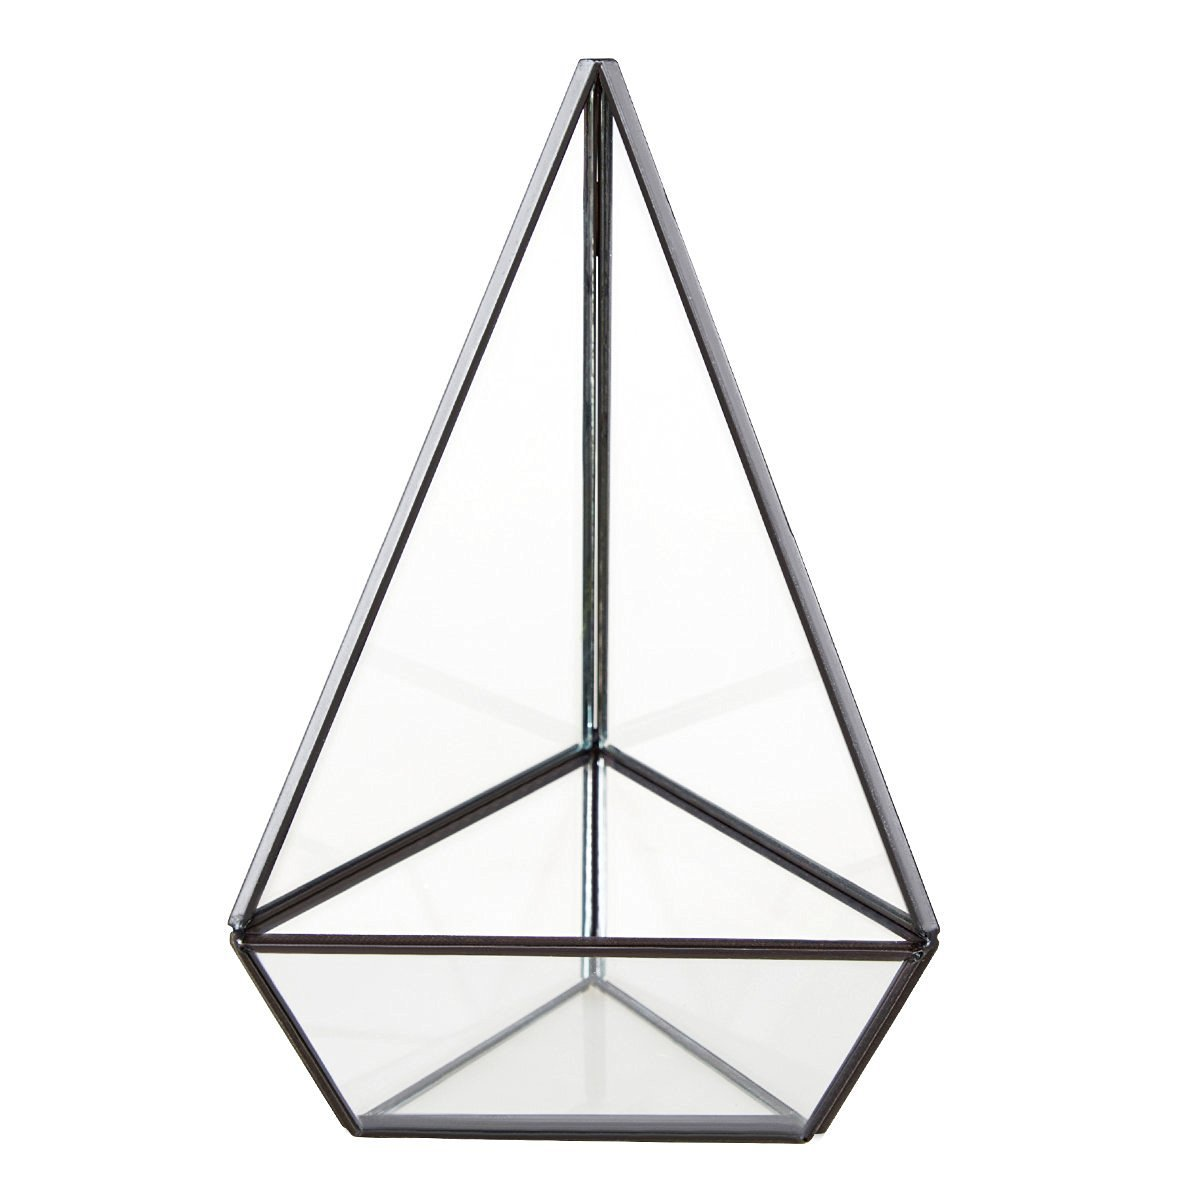 HOMEIDEAS Modern Terrarium Clear Glass Pyramid Tabletop Geometric Polyhedron Box,Decorative Succulent Plants Holder(Black), Gift for Mother's Day by HOMEIDEAS